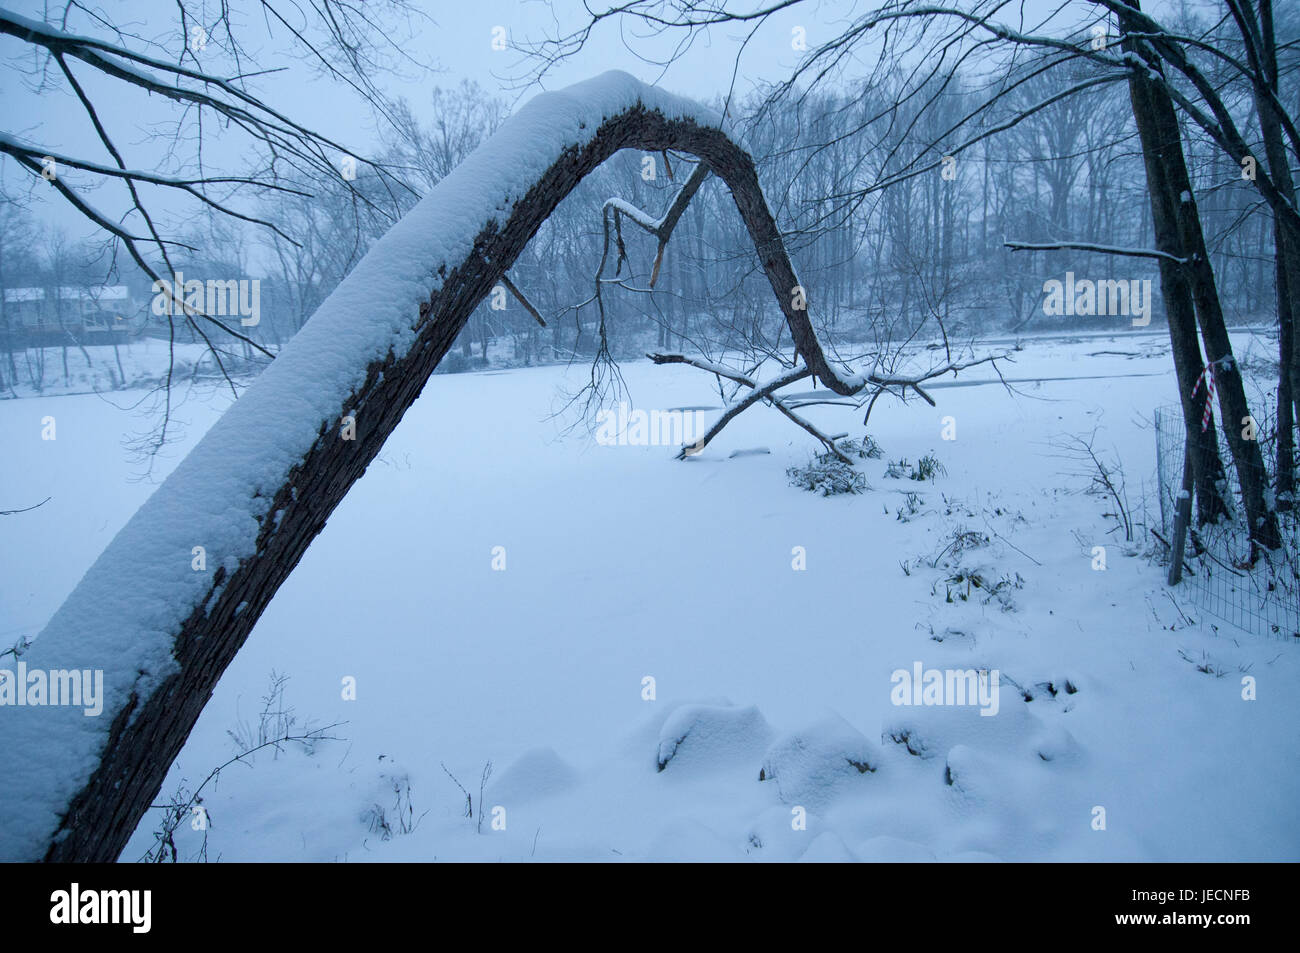 A tree bends over Churchhill Lake South during a blizzard. - Stock Image